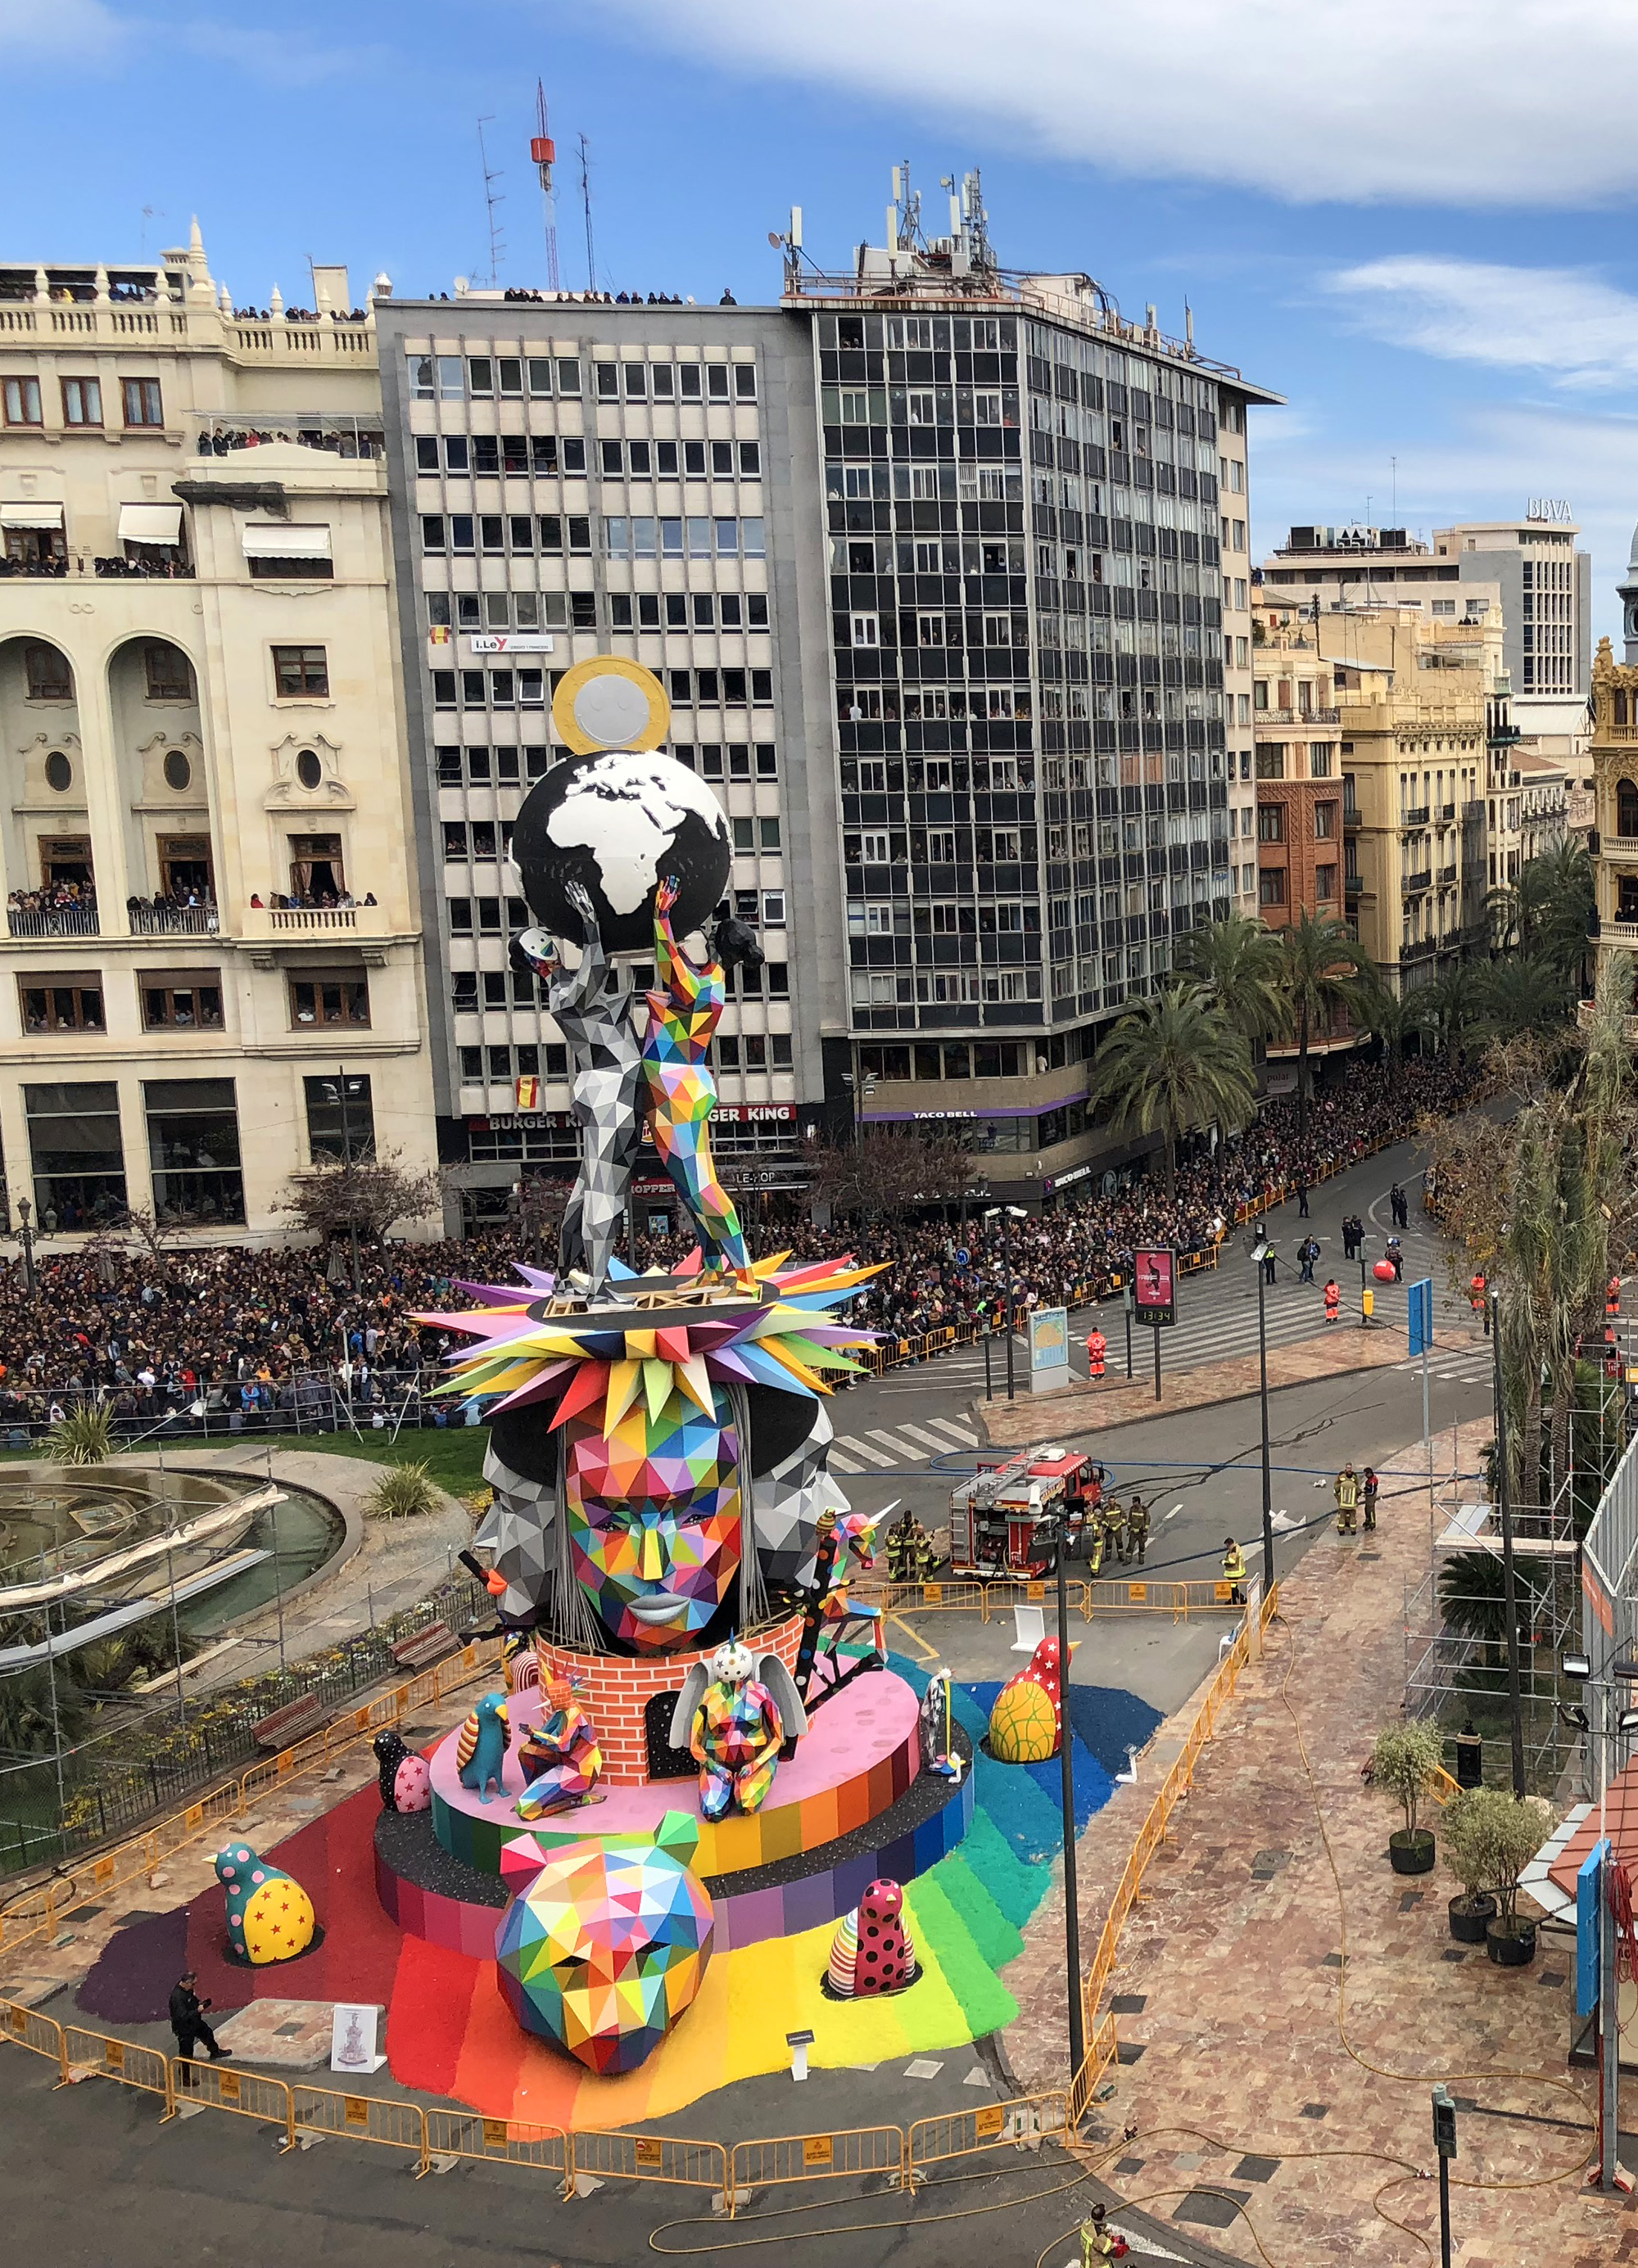 Artist Okuda San Miguel Sets an 82-Foot Sculpture Aflame for the Falles Festival in Valencia (5 pics)